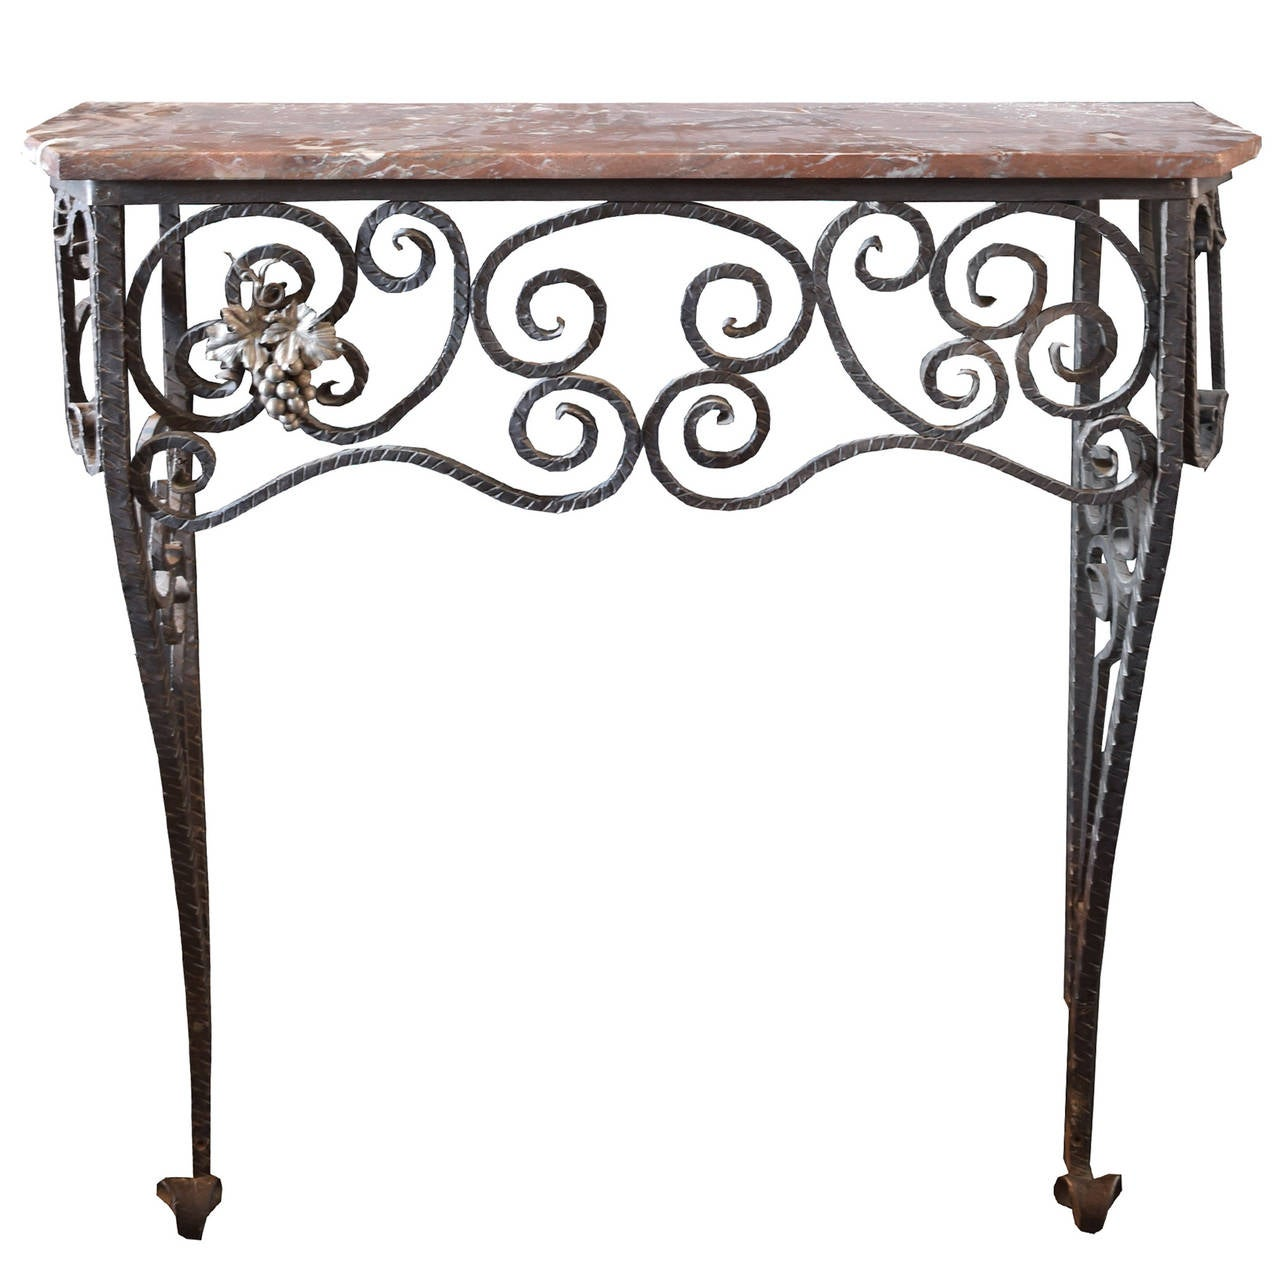 fer forge console table with marble top for sale at 1stdibs. Black Bedroom Furniture Sets. Home Design Ideas